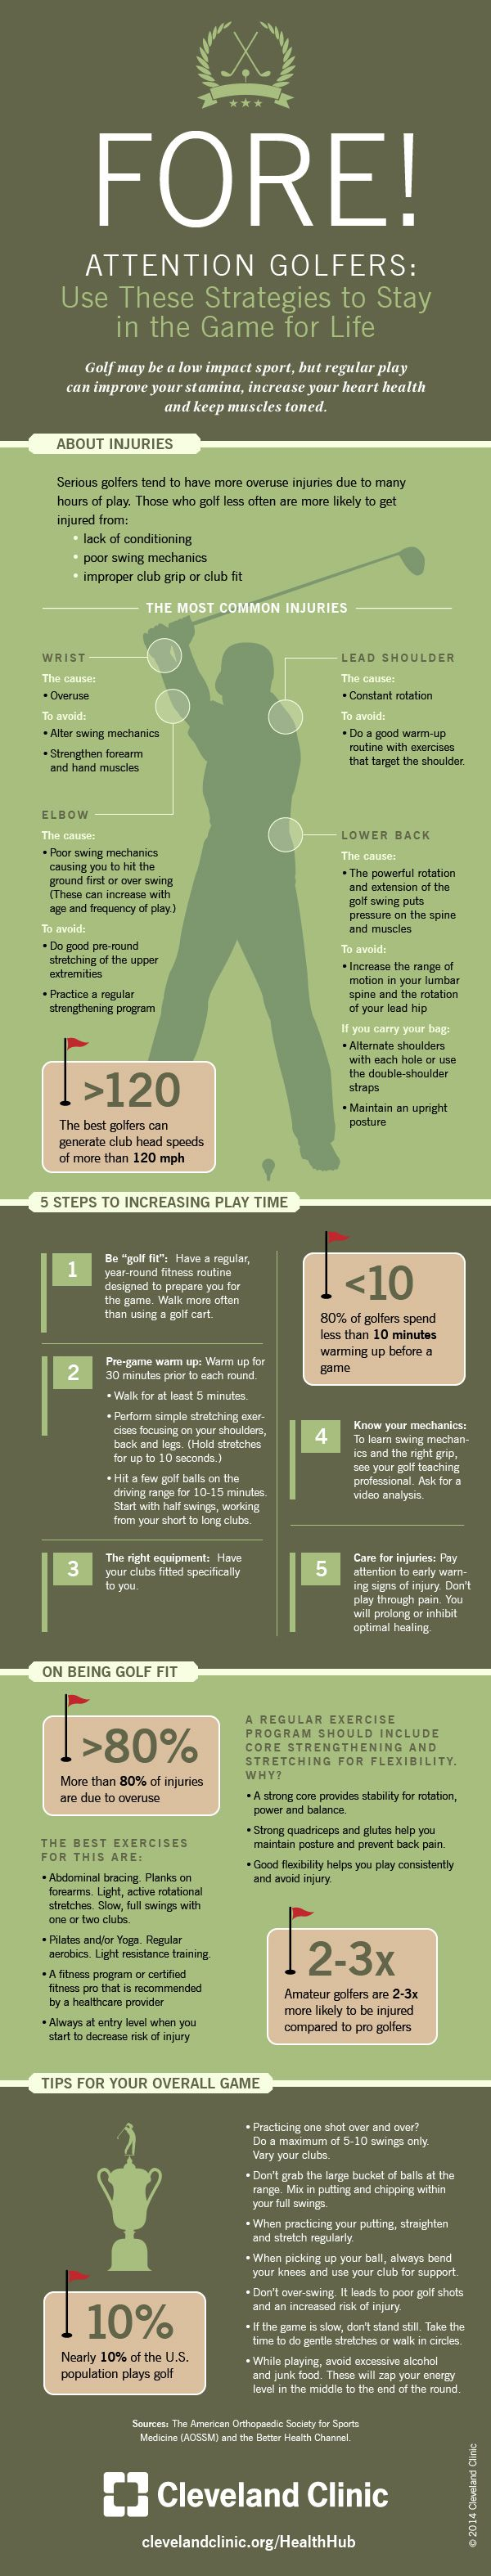 25+ best ideas about Golf tips on Pinterest | Golf, Golf lessons ...